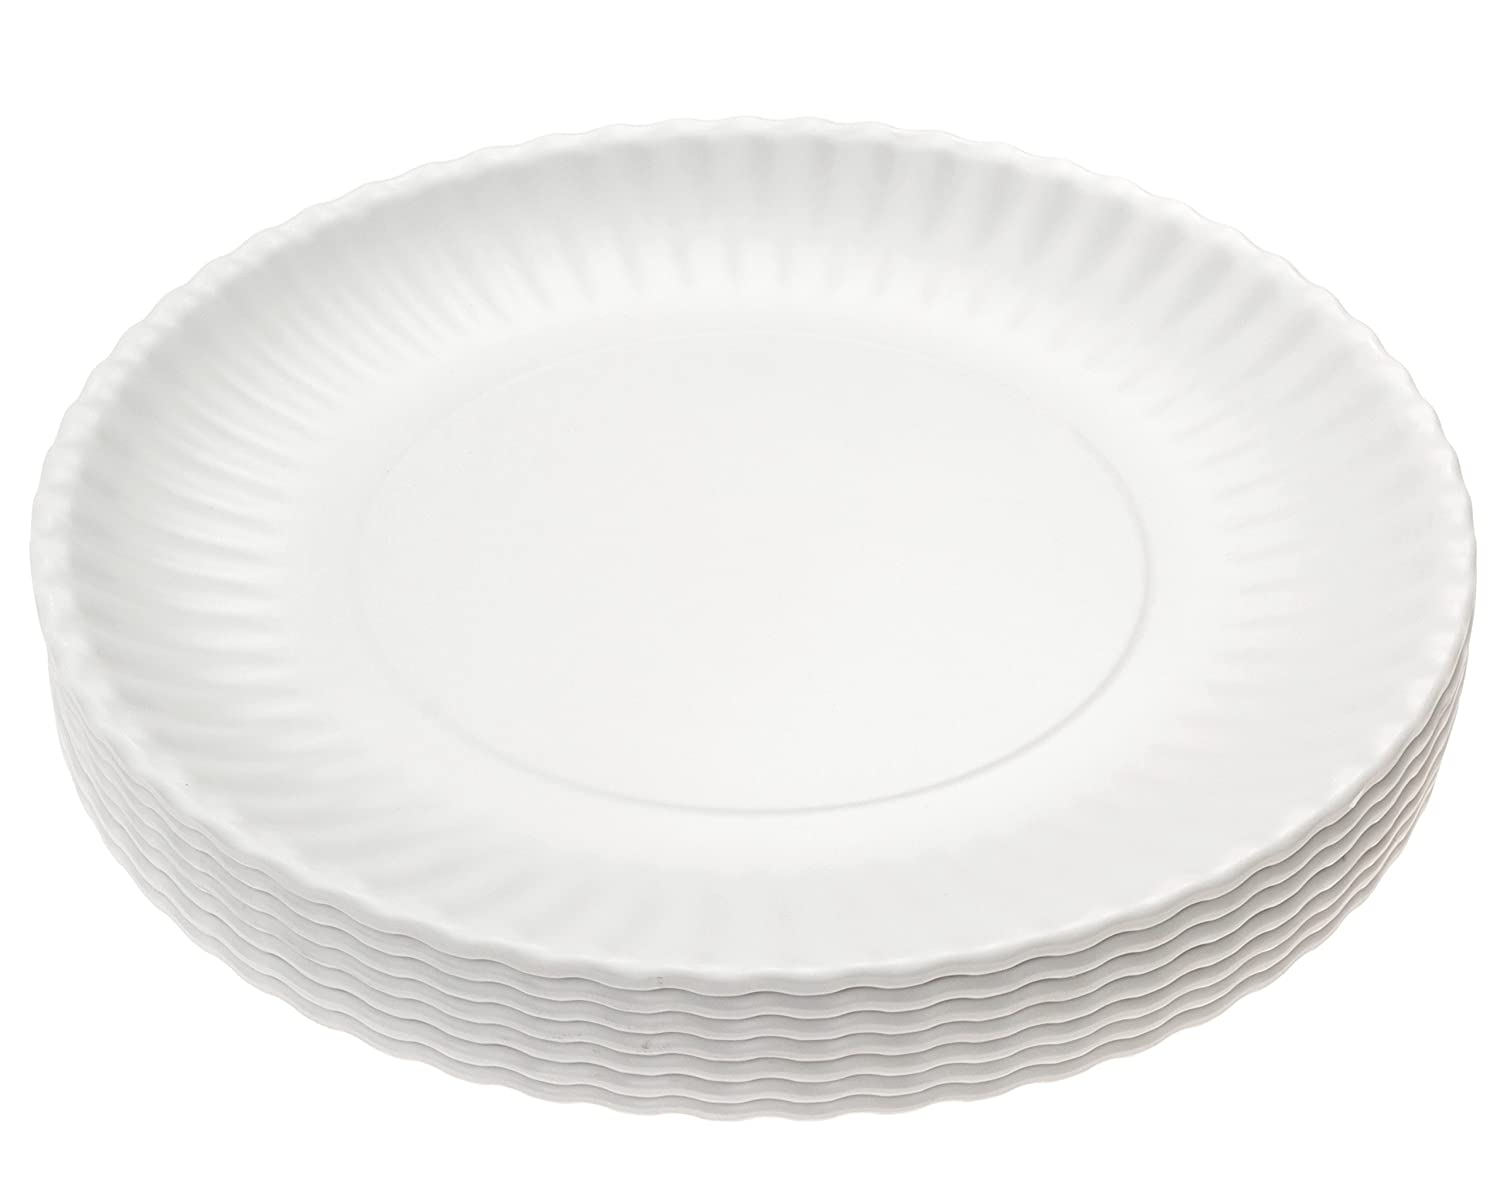 "Picnique Reusable Paper Plate - 9"" Picnic & Dinner Melamine Plates, Dishwasher Safe, BPA Free - Set of 6 Plates"